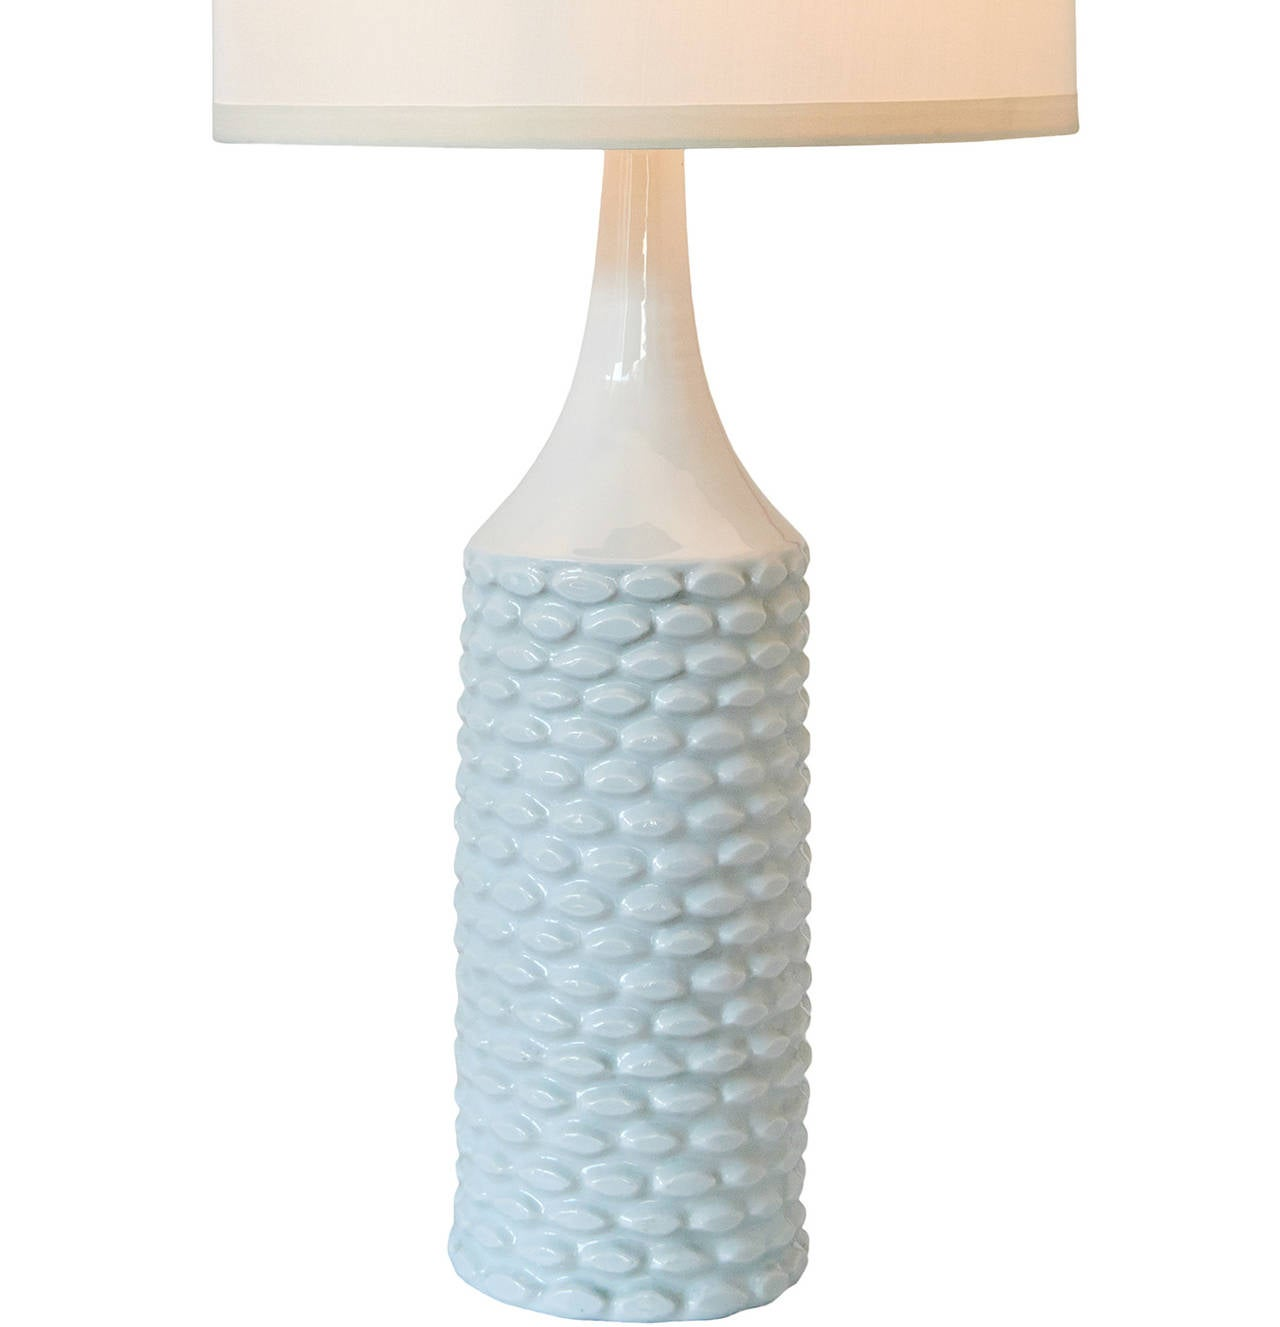 Mid-20th Century 1940 Table Lamp by Axel Salto For Sale